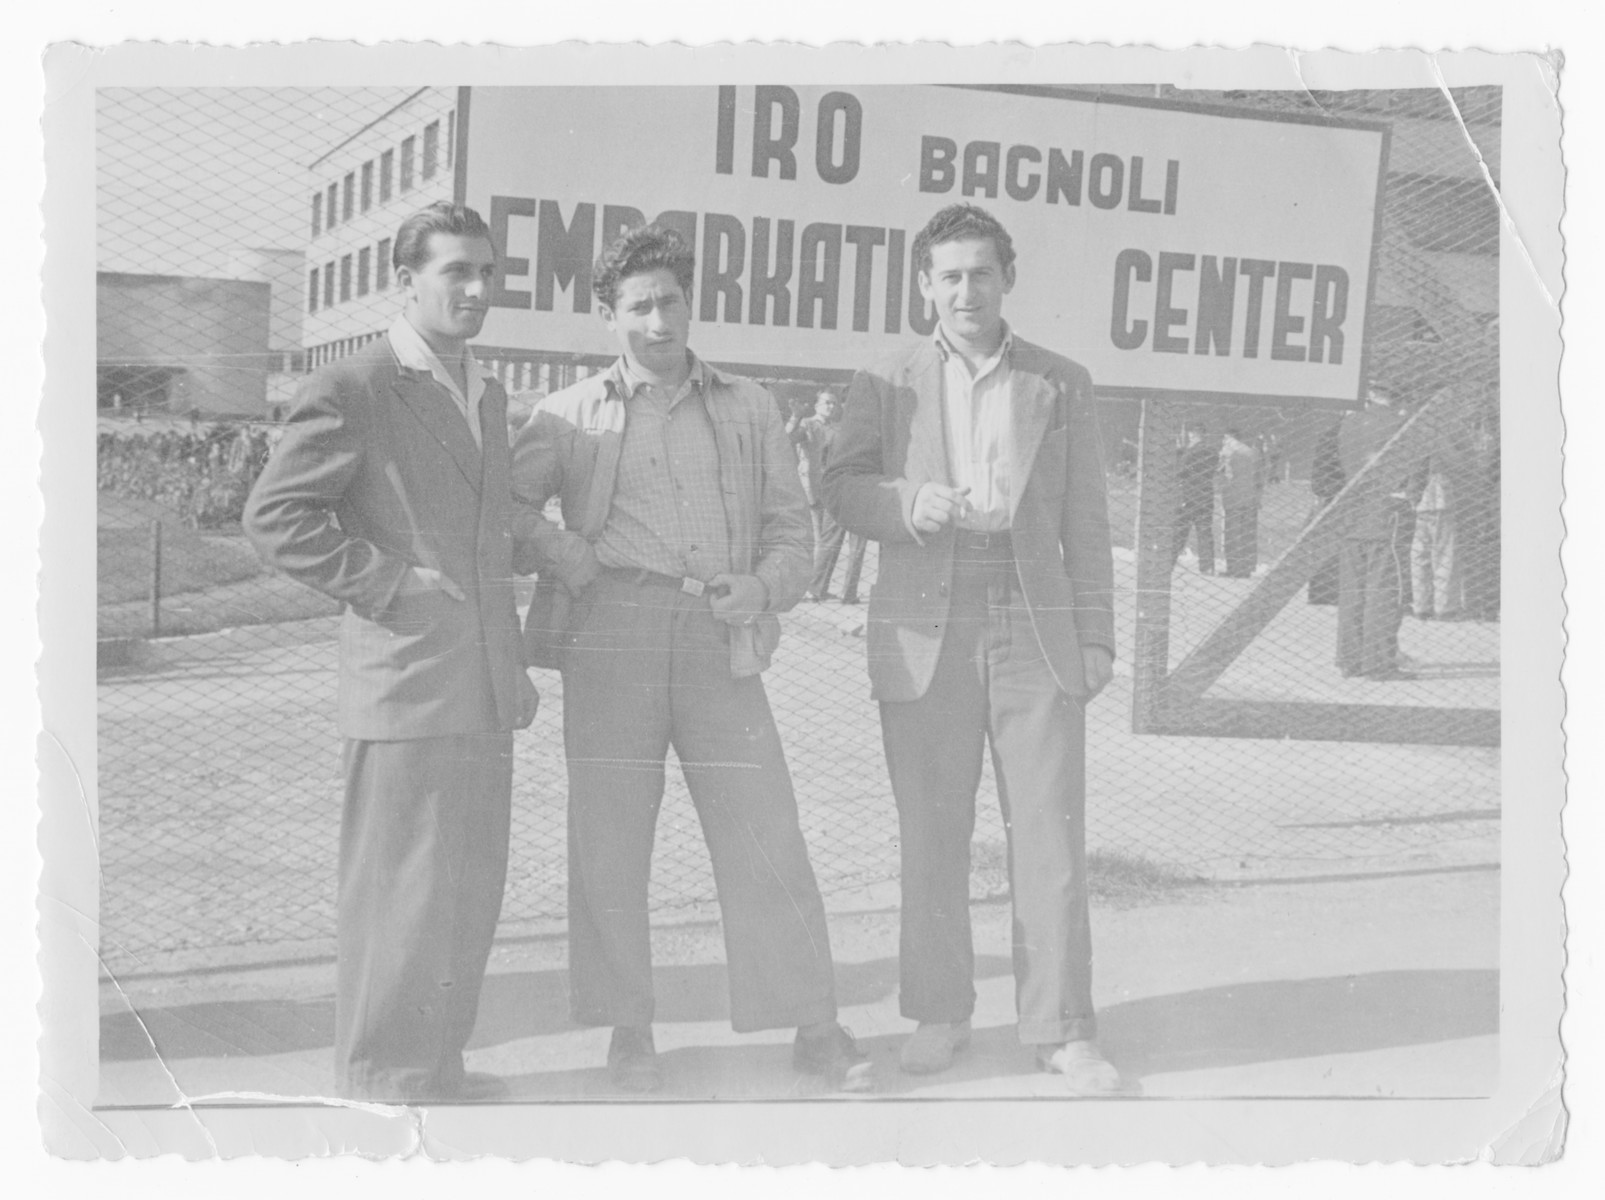 Three Jewish DPs pose in front of the sign for the IRO Embarkation Center in Bagnoli.  Bernard Pasternak is in the middle